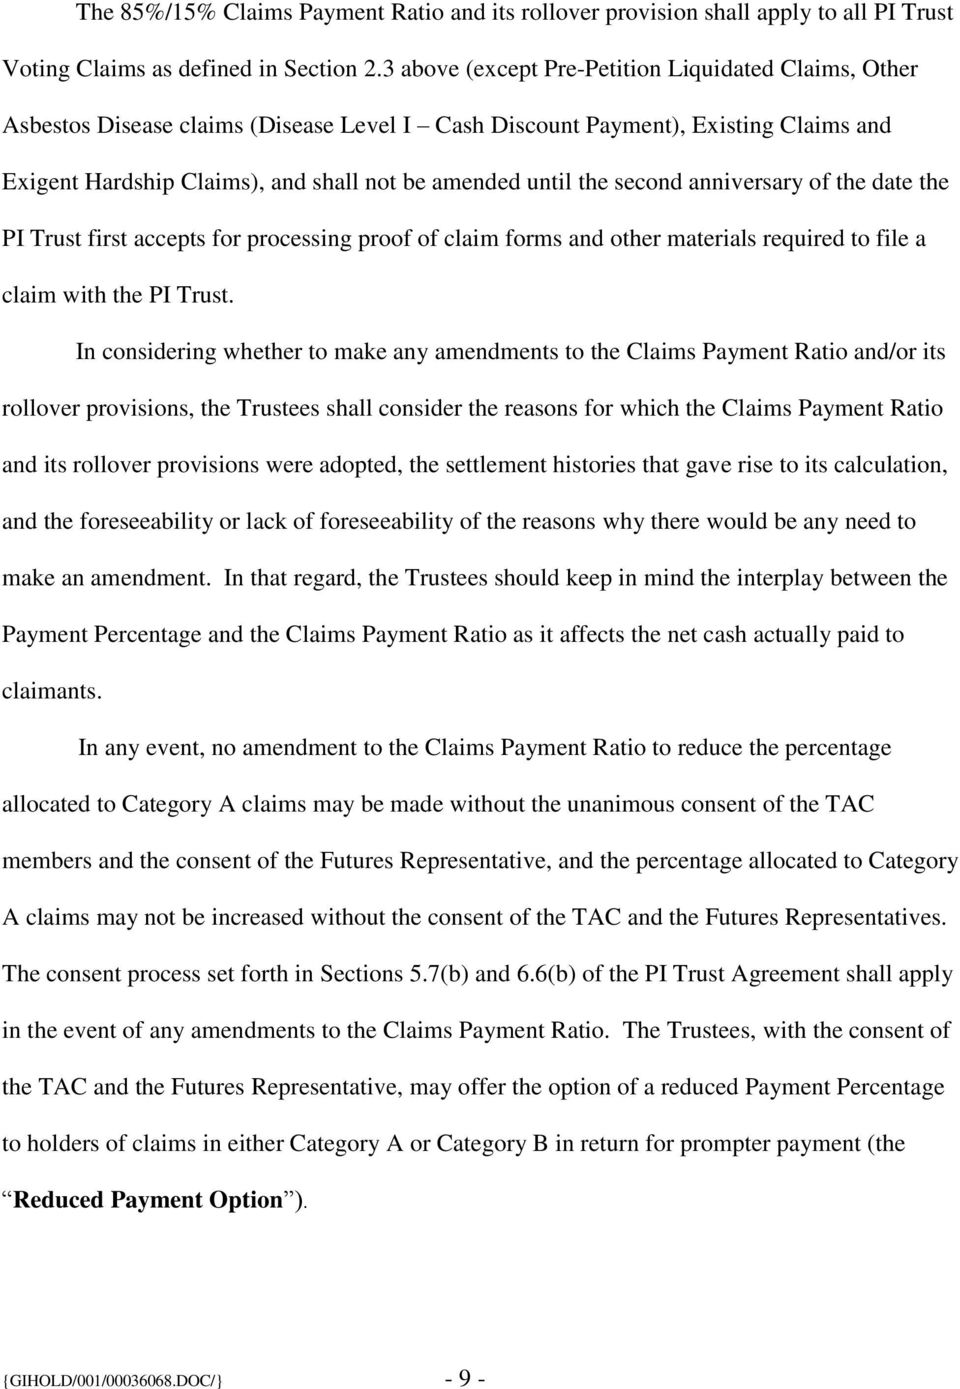 second anniversary of the date the PI Trust first accepts for processing proof of claim forms and other materials required to file a claim with the PI Trust.